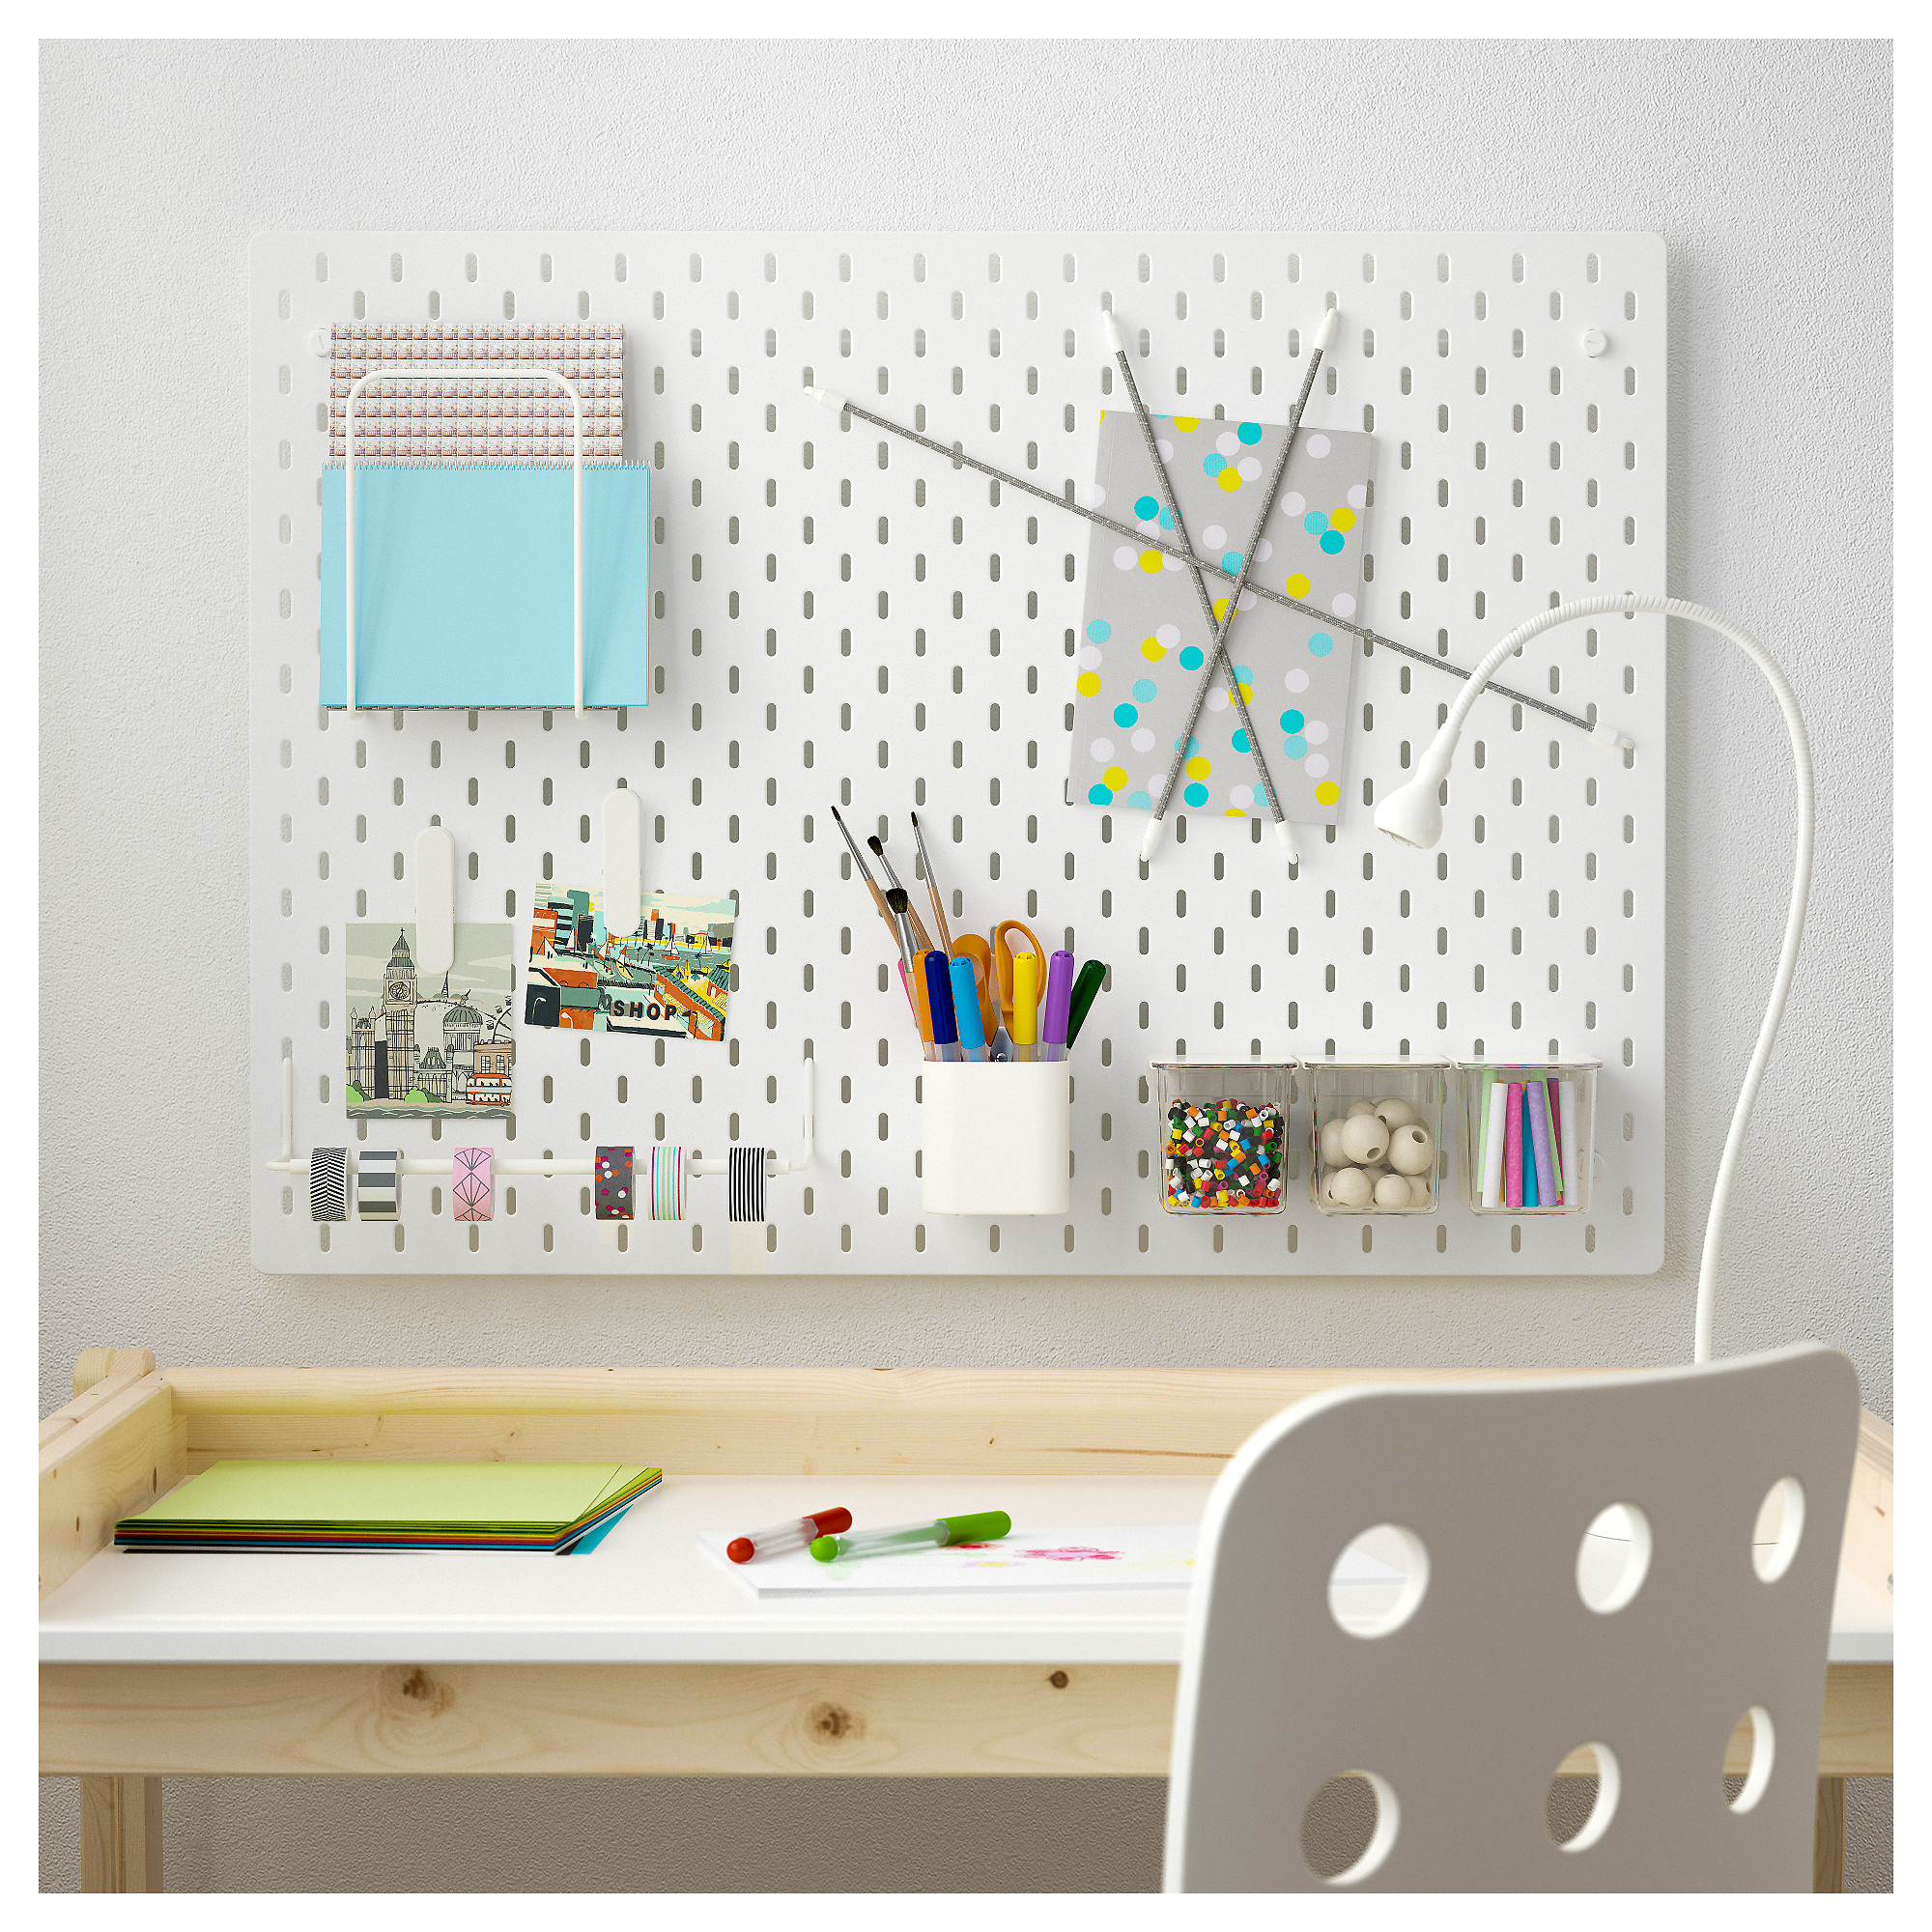 Ikea Com Desk The Best Way To Organize Your Child S Desk Thriftymama